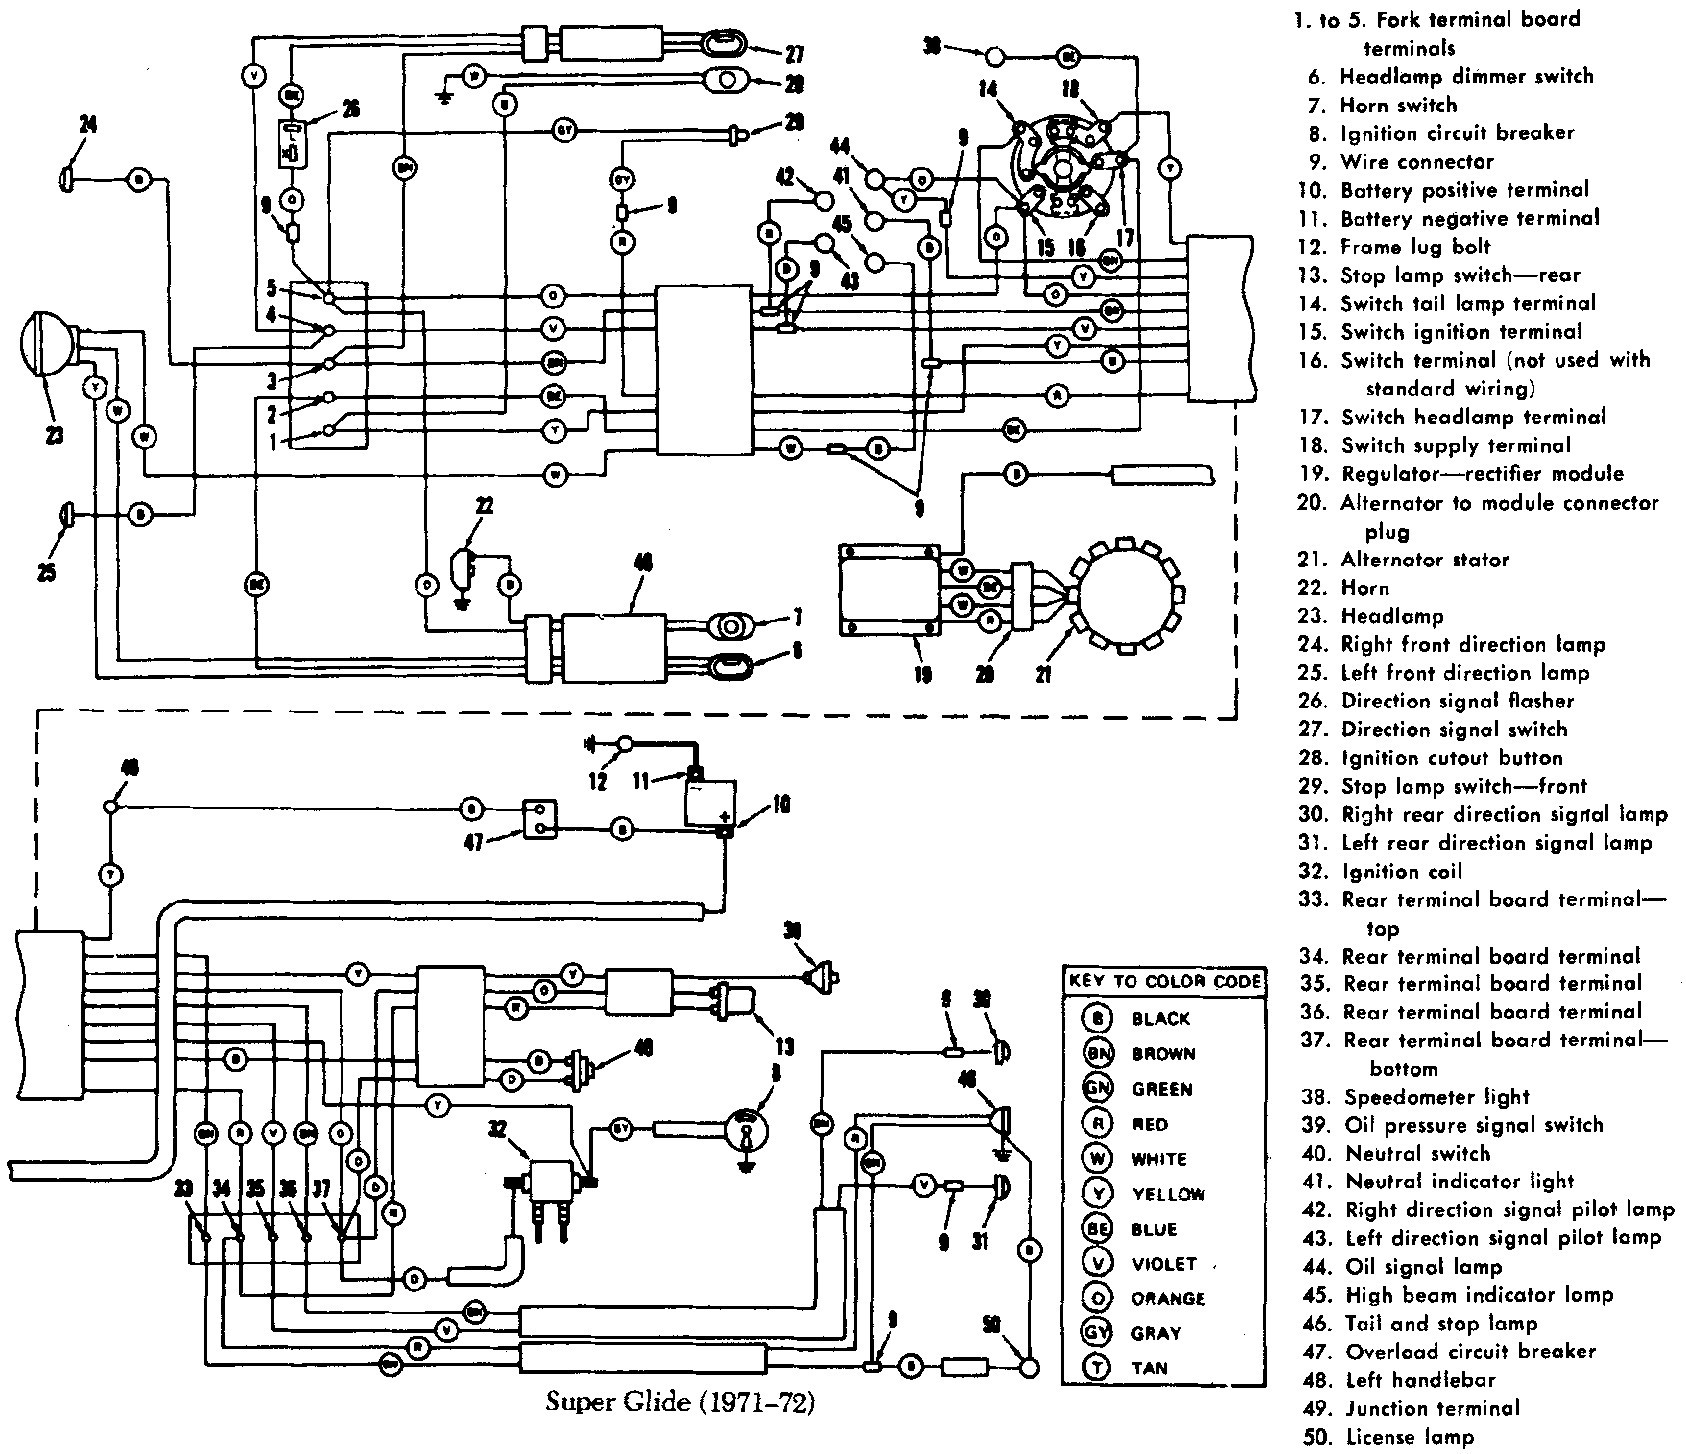 1968 harley davidson wiring diagram wiring diagram nameshovelhead instrument wiring diagram wiring diagram 1968 harley davidson wiring diagram